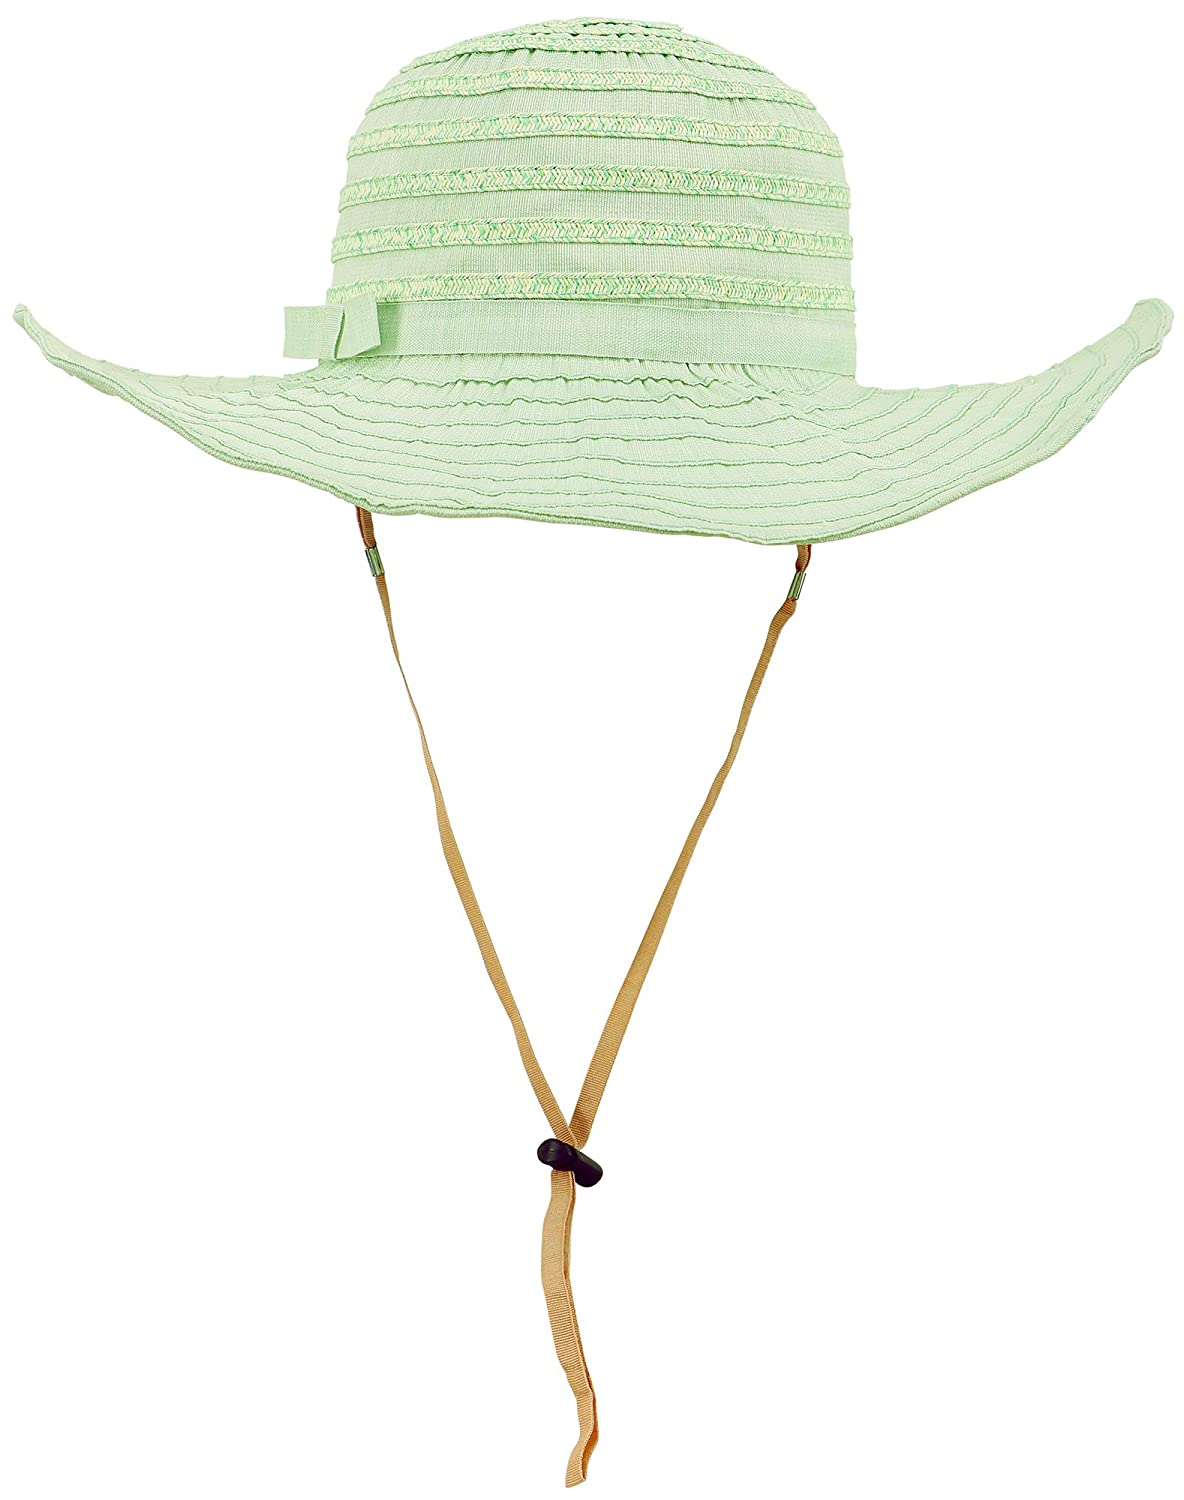 AshopZ Womens Summer Floppy Beach Sun Hat with Removable Strap